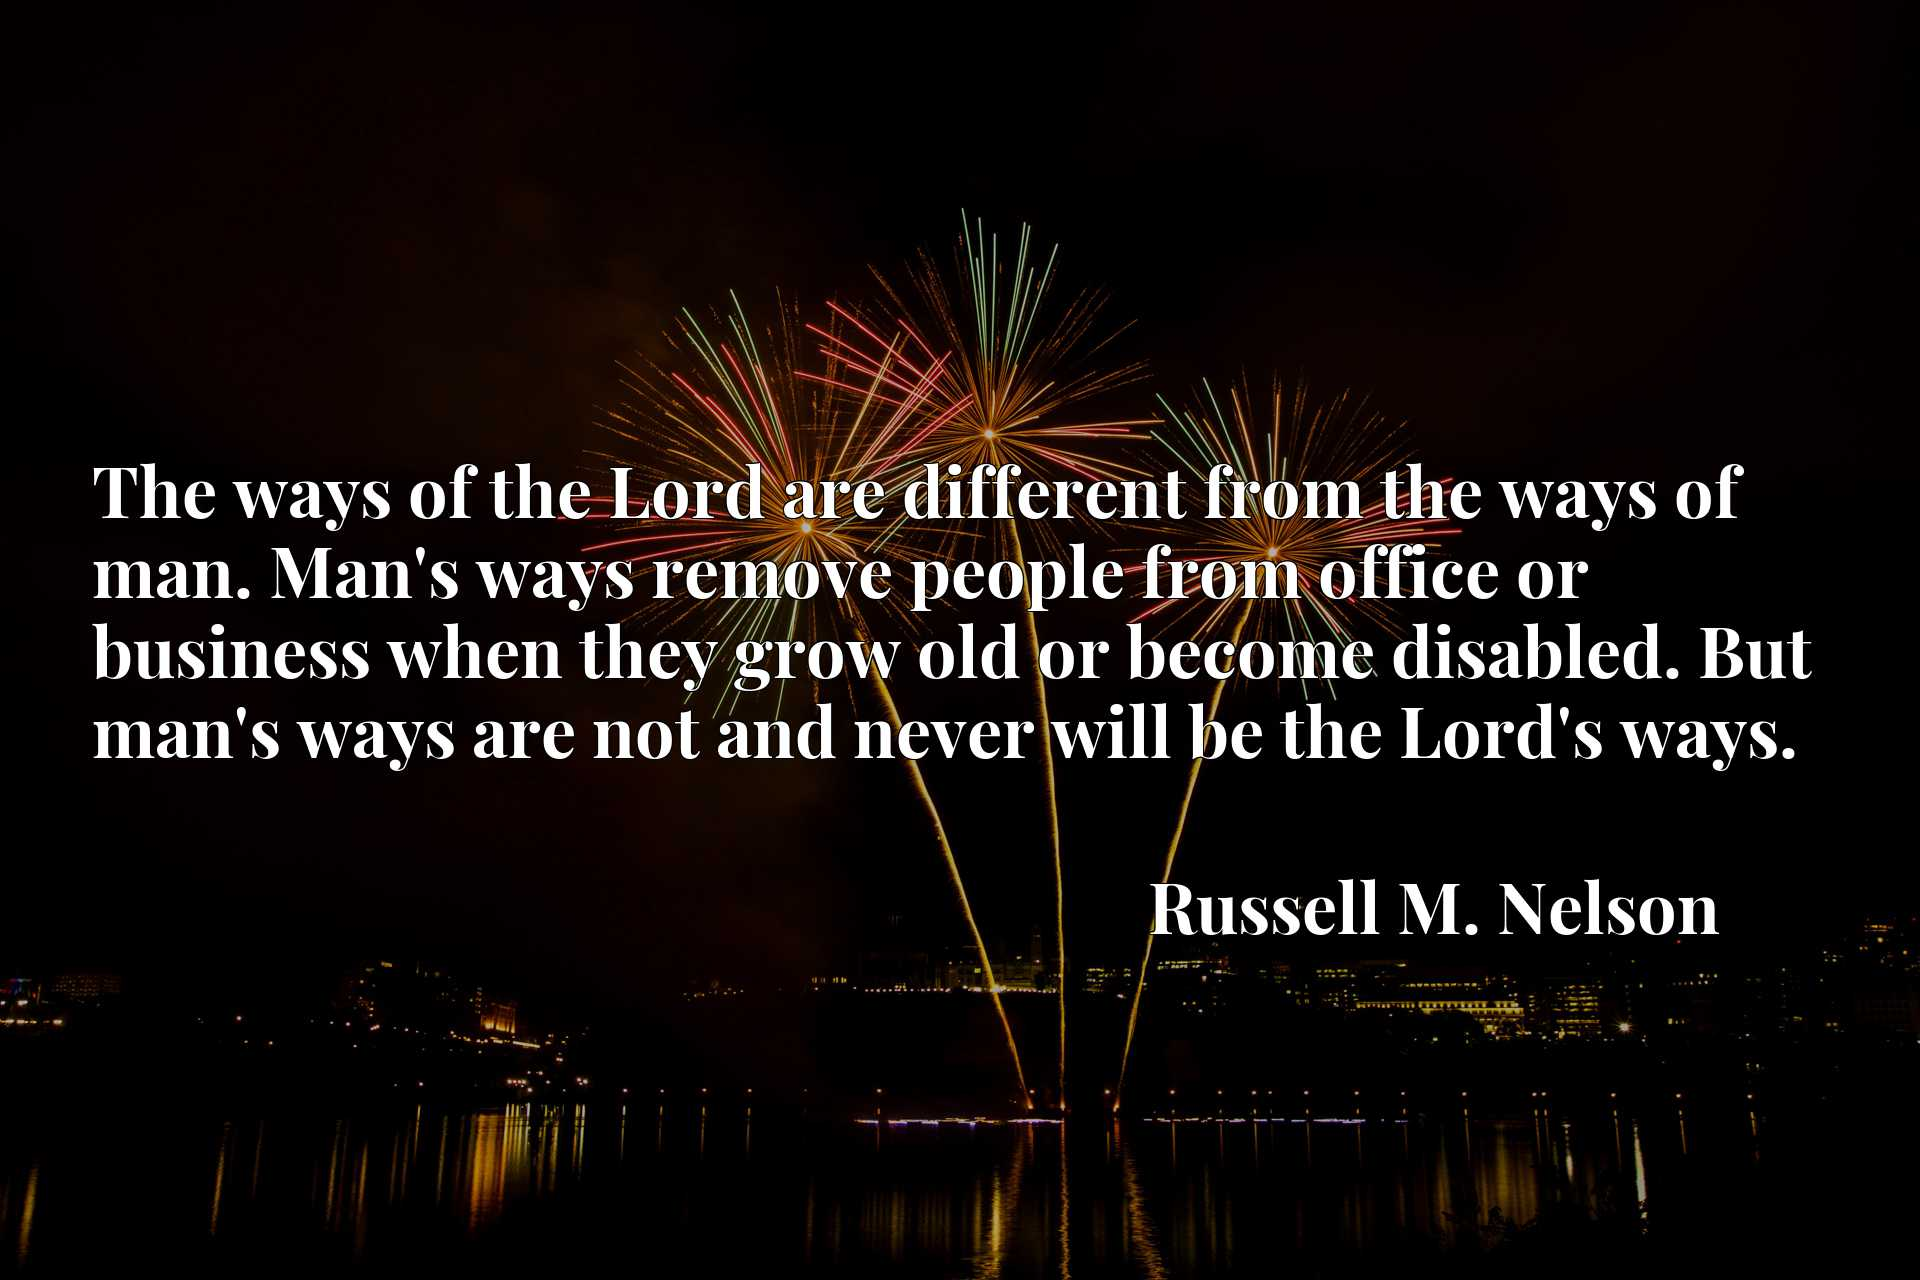 The ways of the Lord are different from the ways of man. Man's ways remove people from office or business when they grow old or become disabled. But man's ways are not and never will be the Lord's ways.